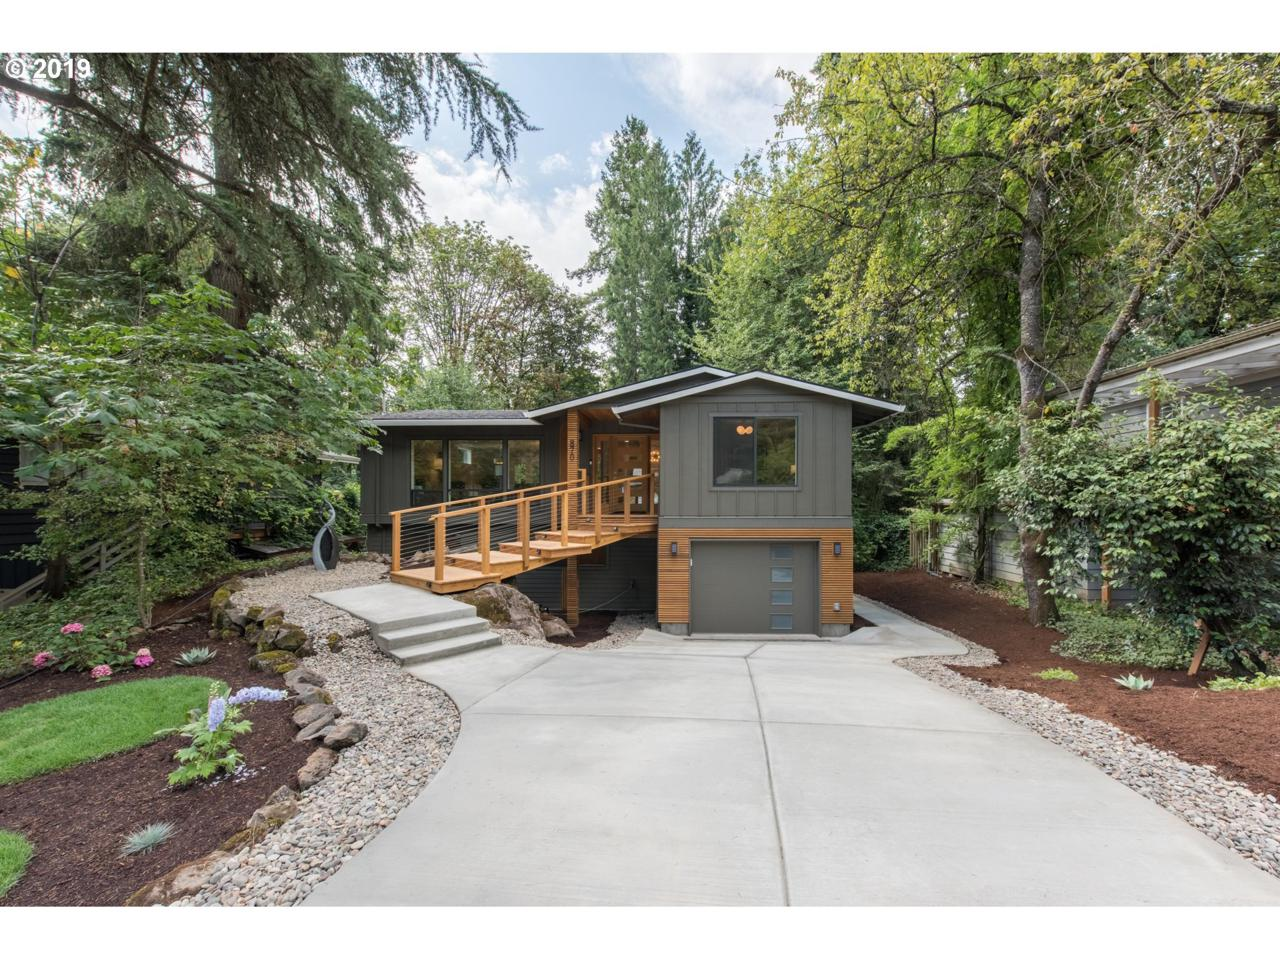 870 Lake Forest Dr - Photo 1